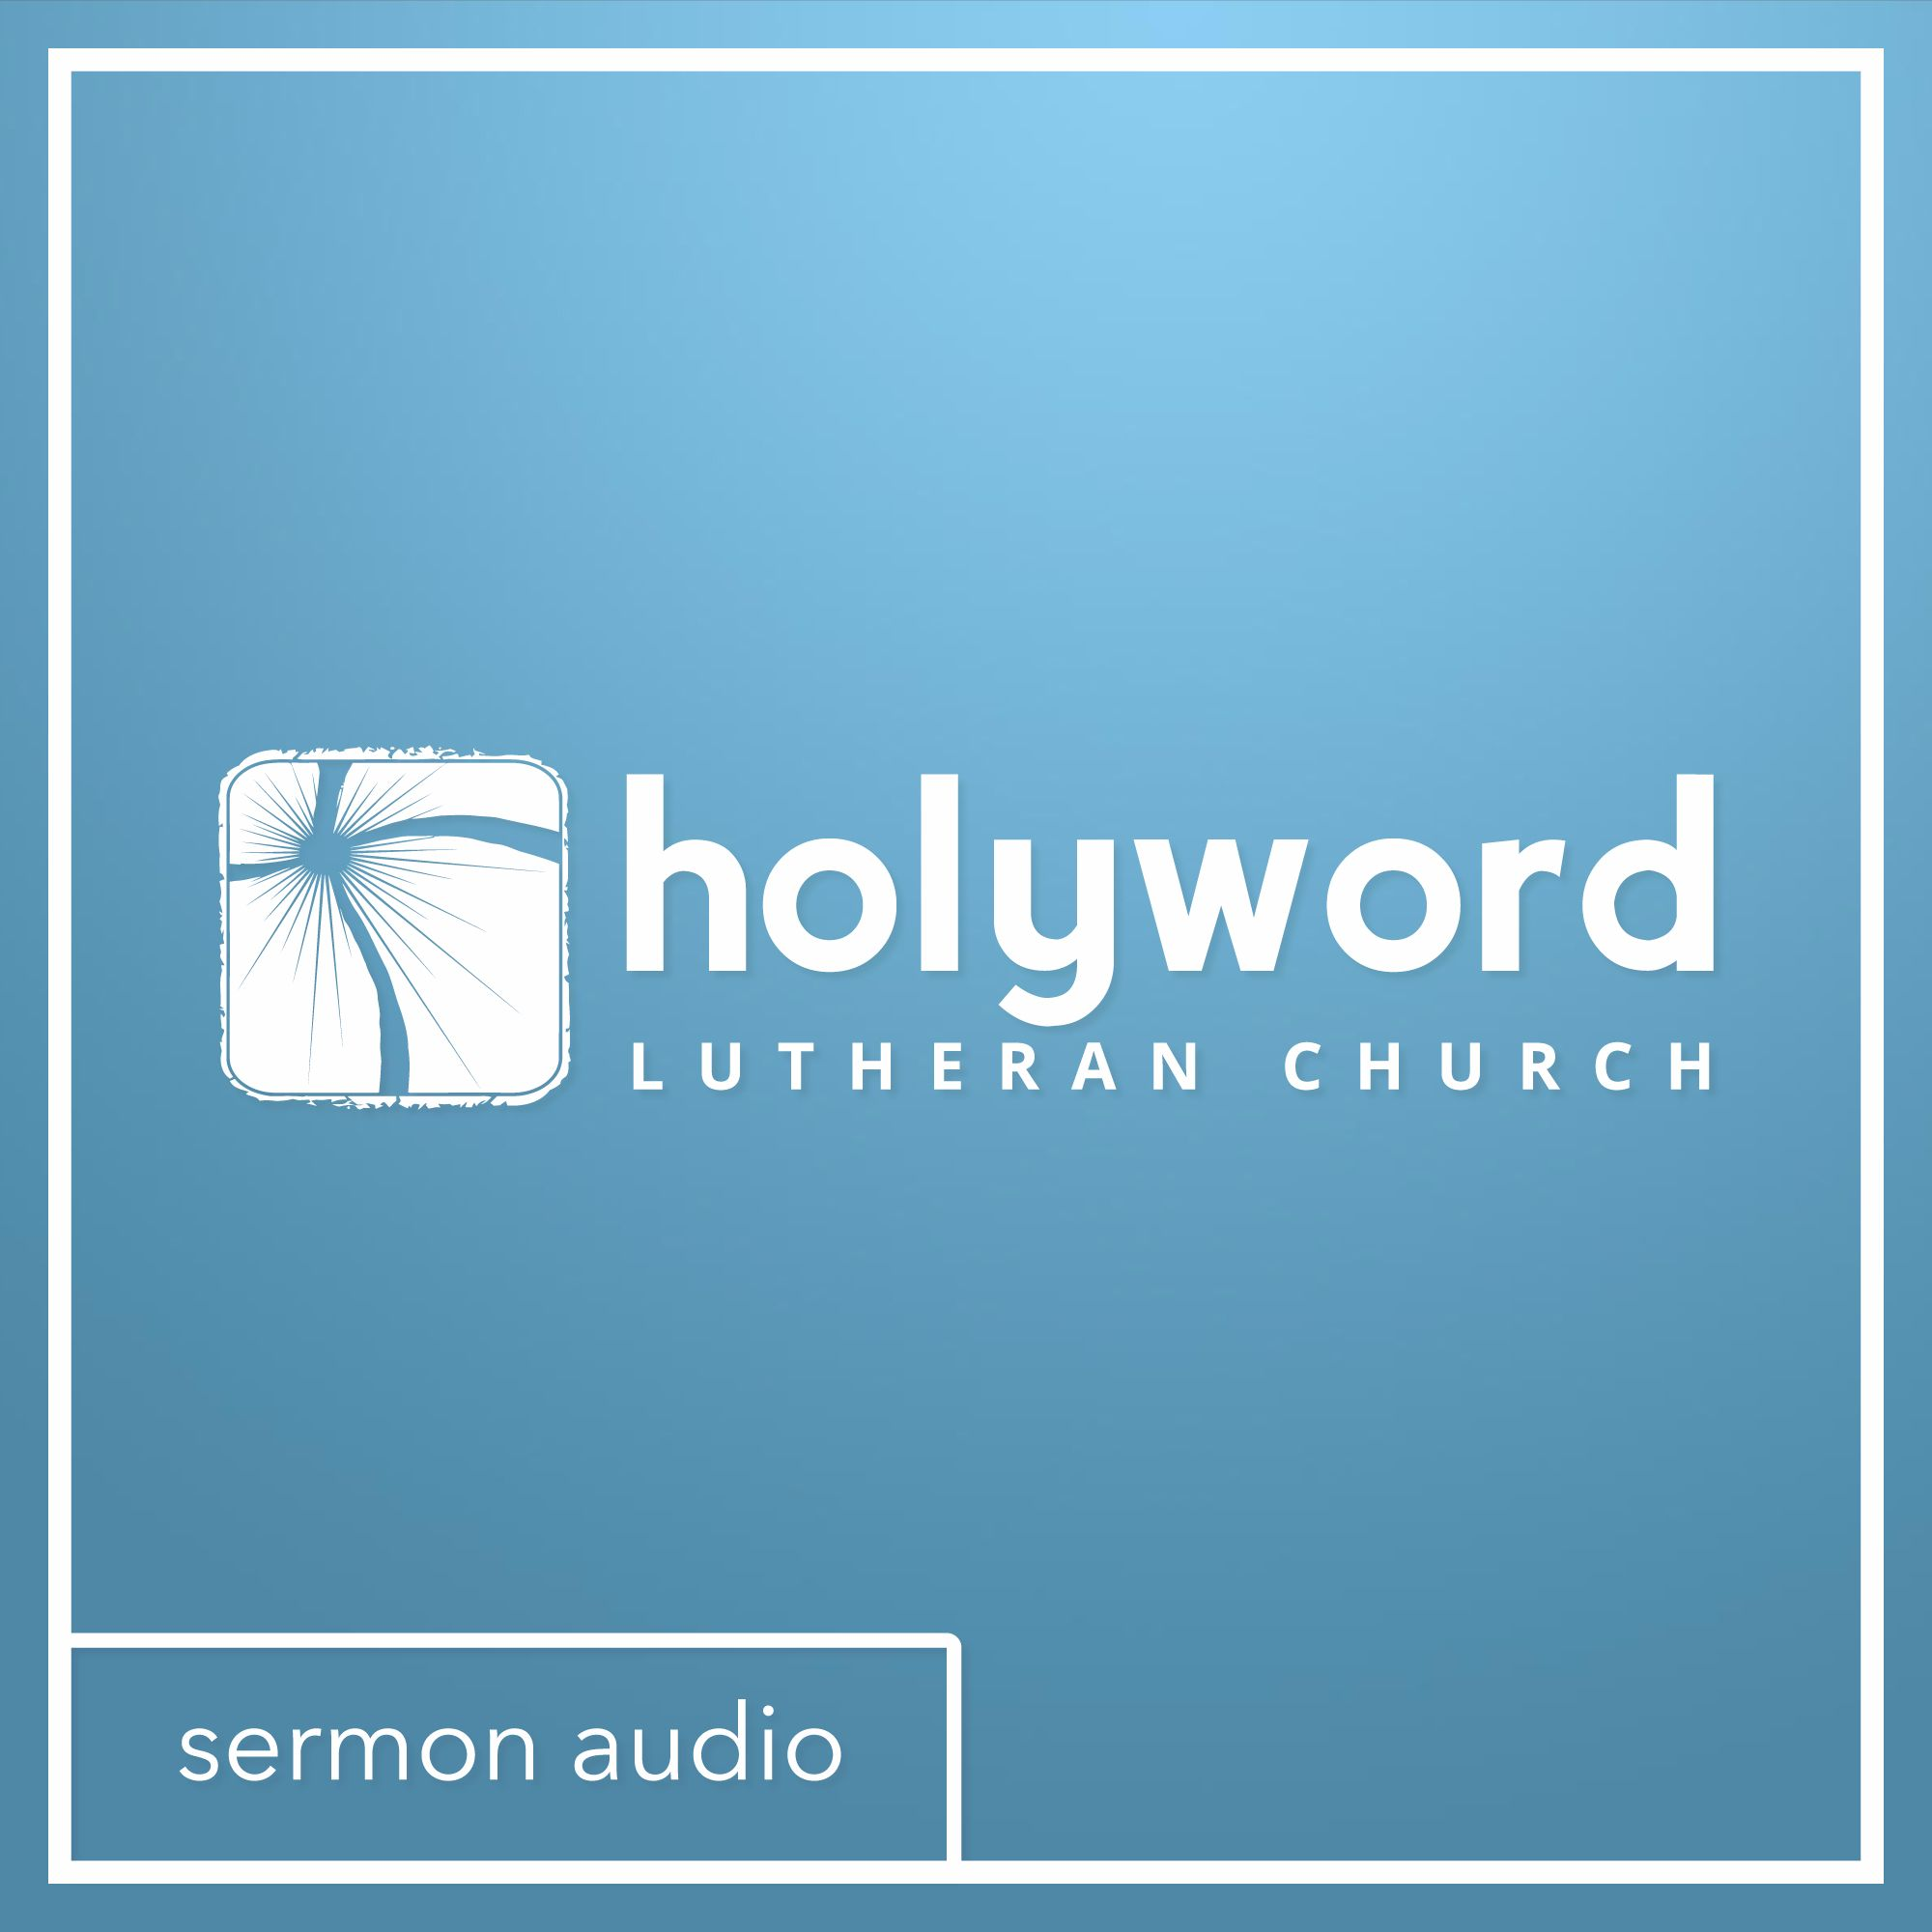 Holy Word Lutheran Church - Sermons